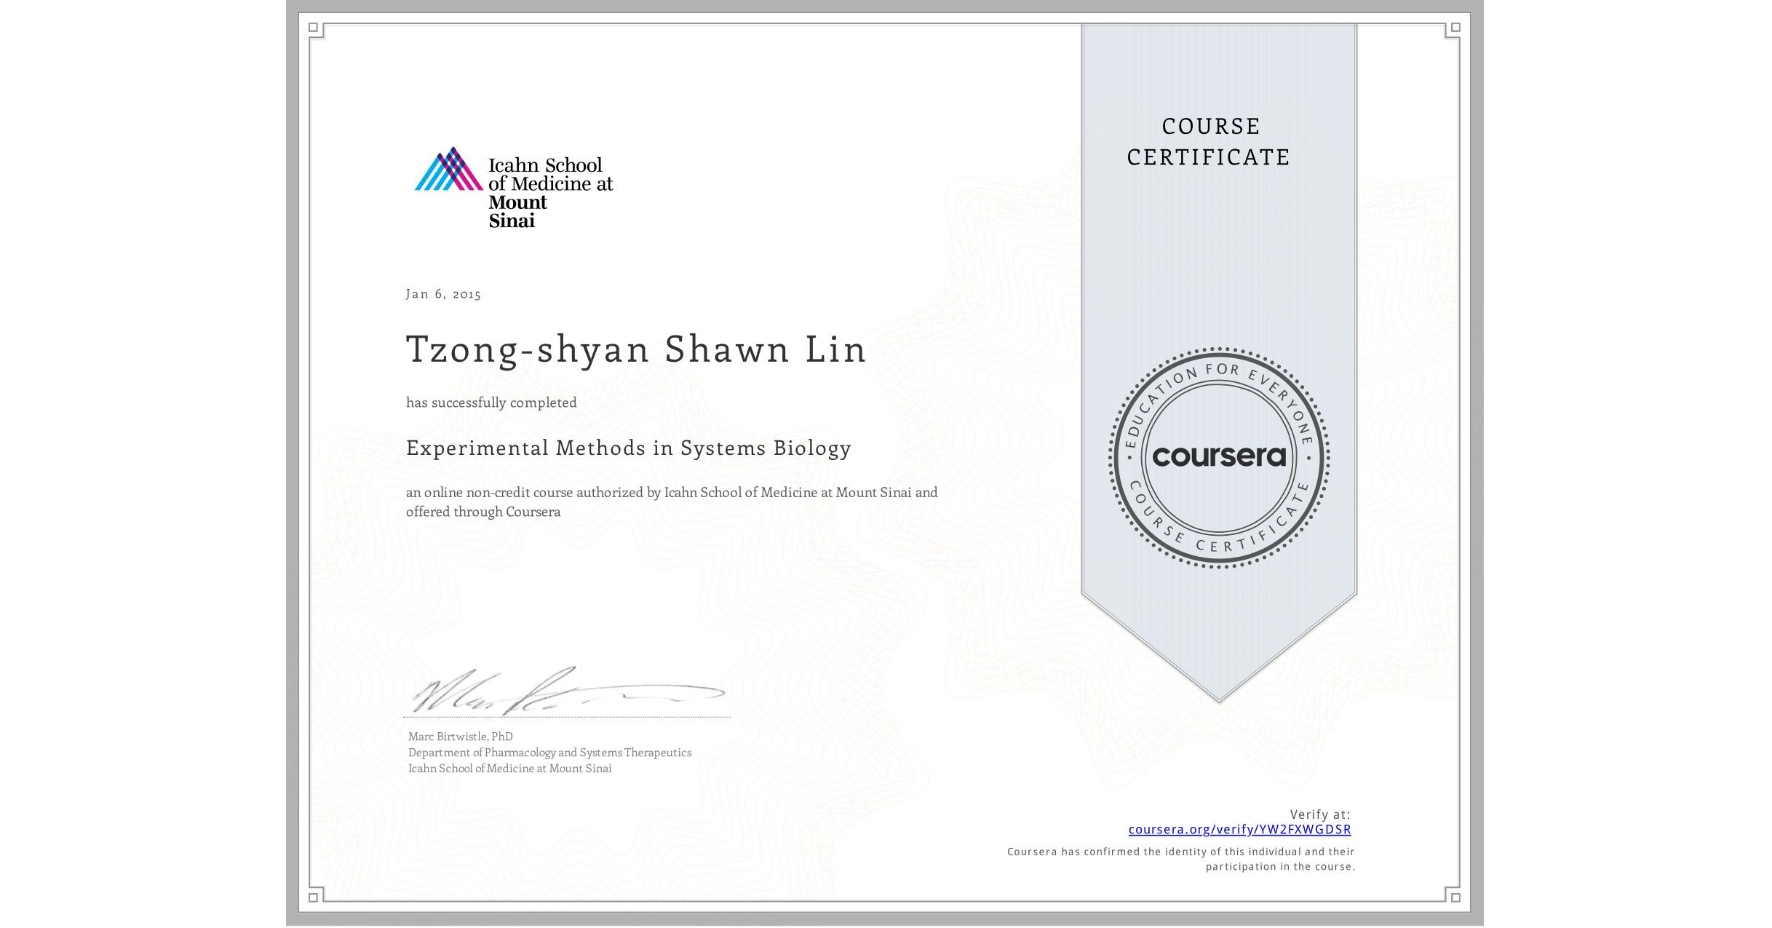 View certificate for Tzong-shyan Shawn Lin, Experimental Methods in Systems Biology, an online non-credit course authorized by Icahn School of Medicine at Mount Sinai and offered through Coursera